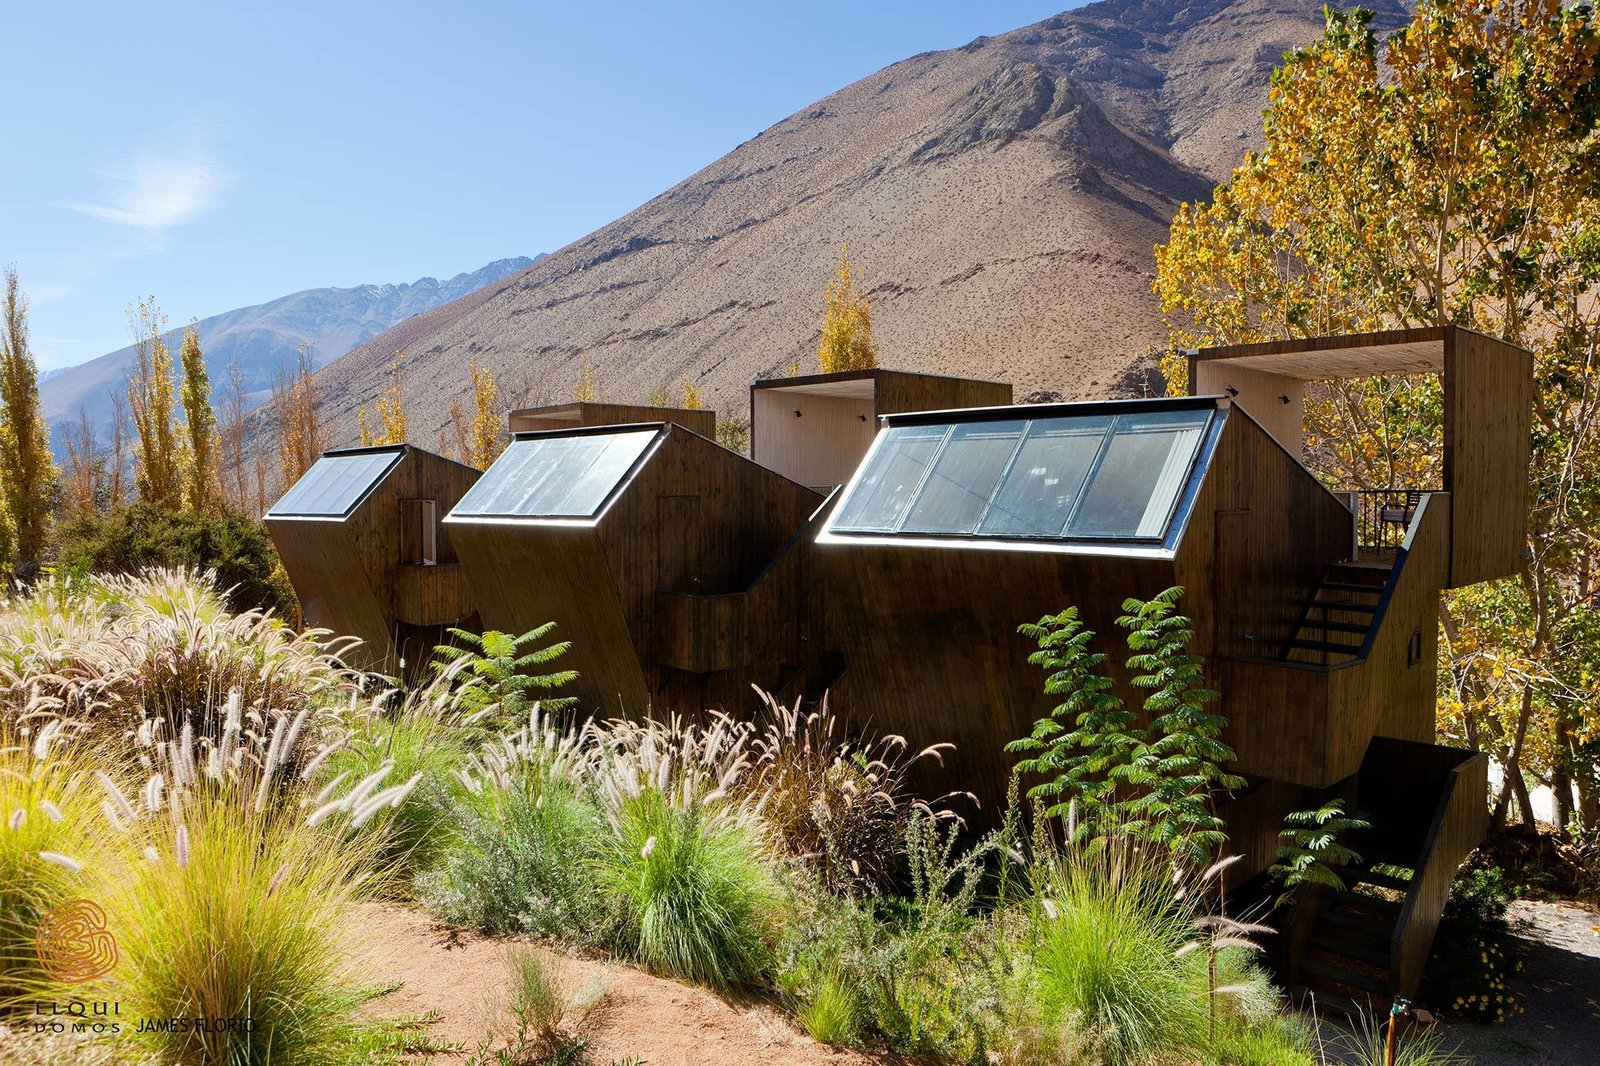 """Elqui Domos, a hotel in Chile's Elqui Valley offers """"observatory rooms"""" – three-level wooden cabins on the upper slope of the land that offer direct sightlines towards the dramatic scenery outdoors.  Photo 5 of 10 in Get Back to Basics by Staying at One of These Modern Cabins"""